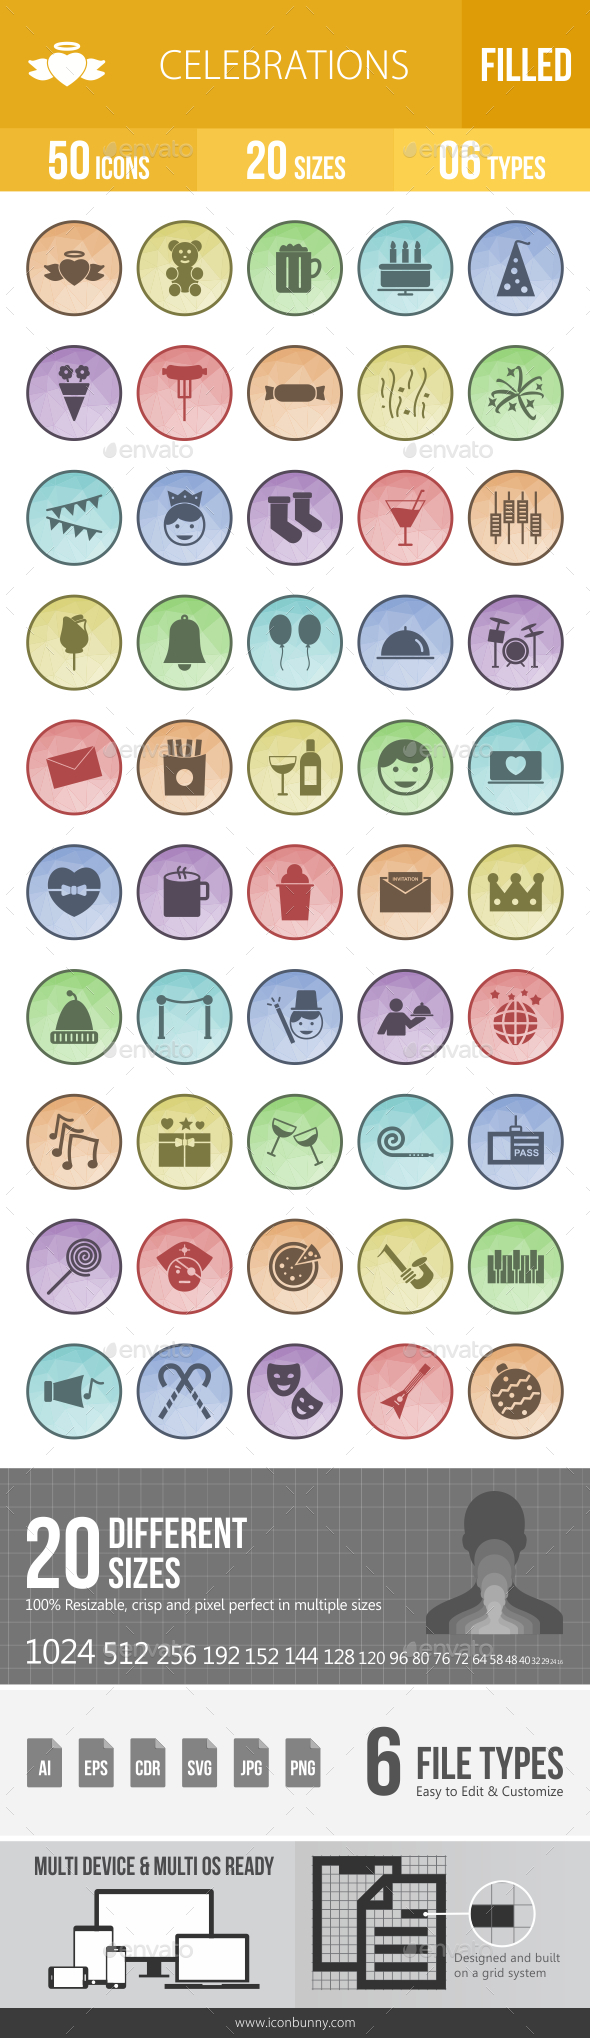 GraphicRiver Celebrations Filled Low Poly B G Icons 20908966